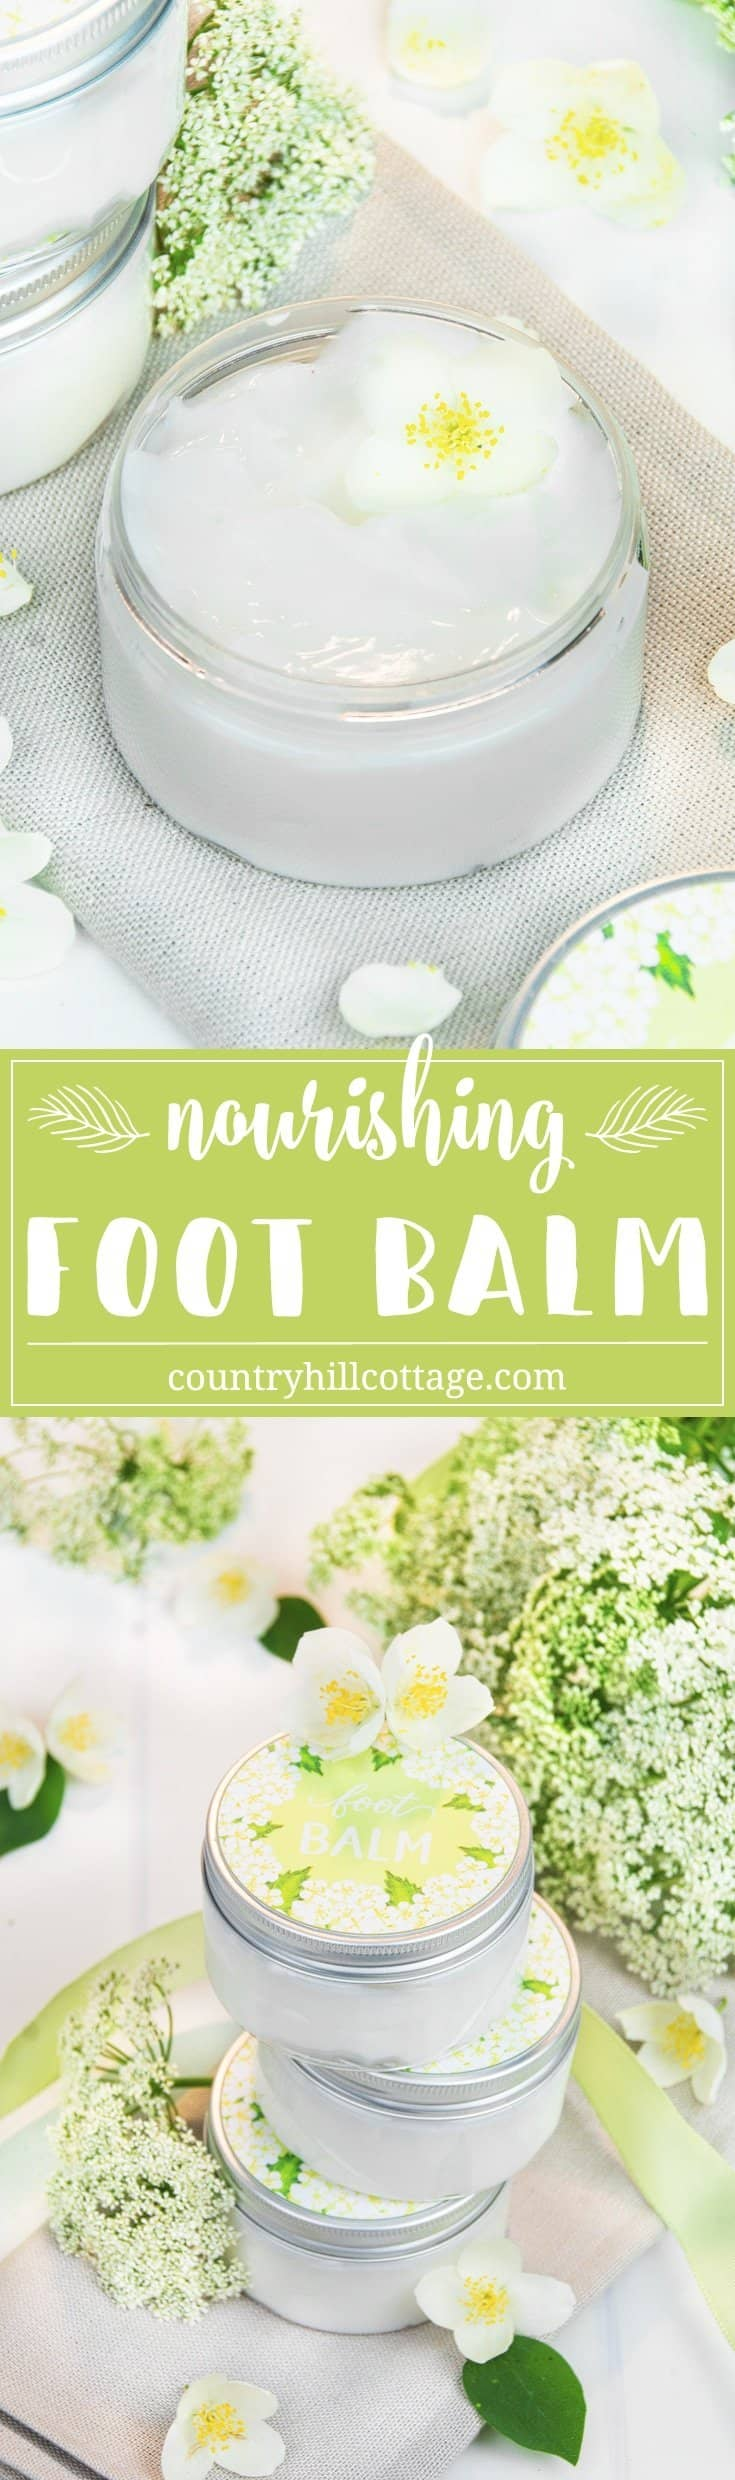 Perk up tired, dry feet and cracked heels with a nourishing foot balm with essential oils! This homemade foot balm recipe is wonderful DIY treatment to care for your feet and make them healthy, smooth and sandal-ready. The balm is made with nourisihing oils and butters and essential oils and helps to sooth aching feet, soften callouses and treat rough, ragged skin. #footbalm #skincare #essentialoils #beautyrecipe   countryhillcottage.com